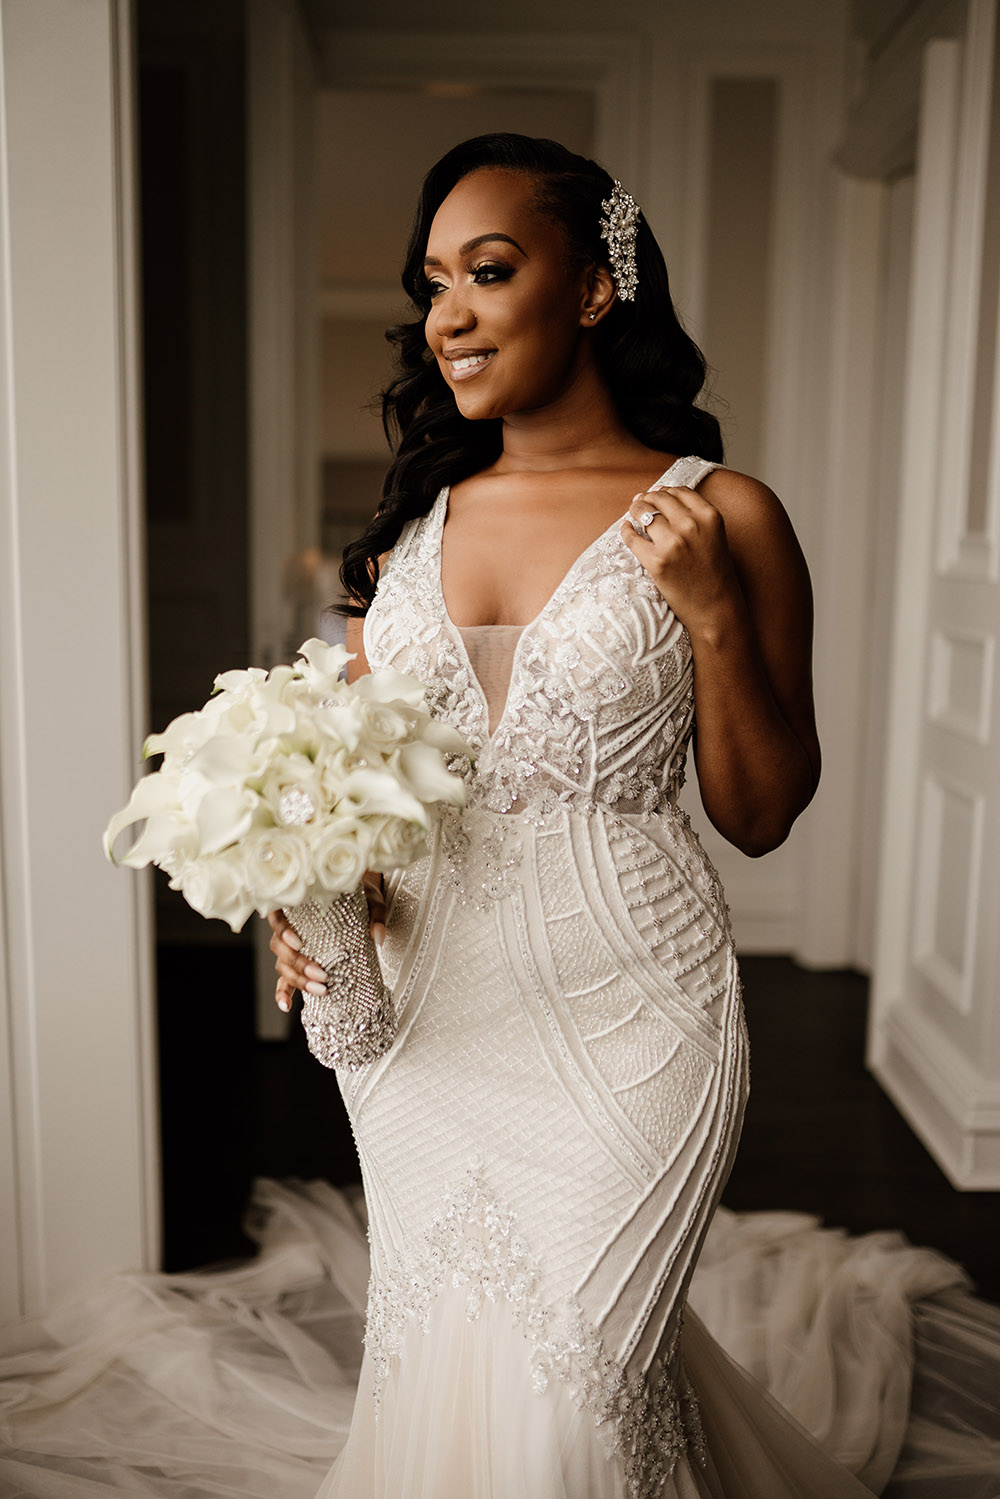 Shemia wore a beautiful Badgley Mischka gown and carried a bouquet of white roses and lilies. | Photo by Audie Jackson